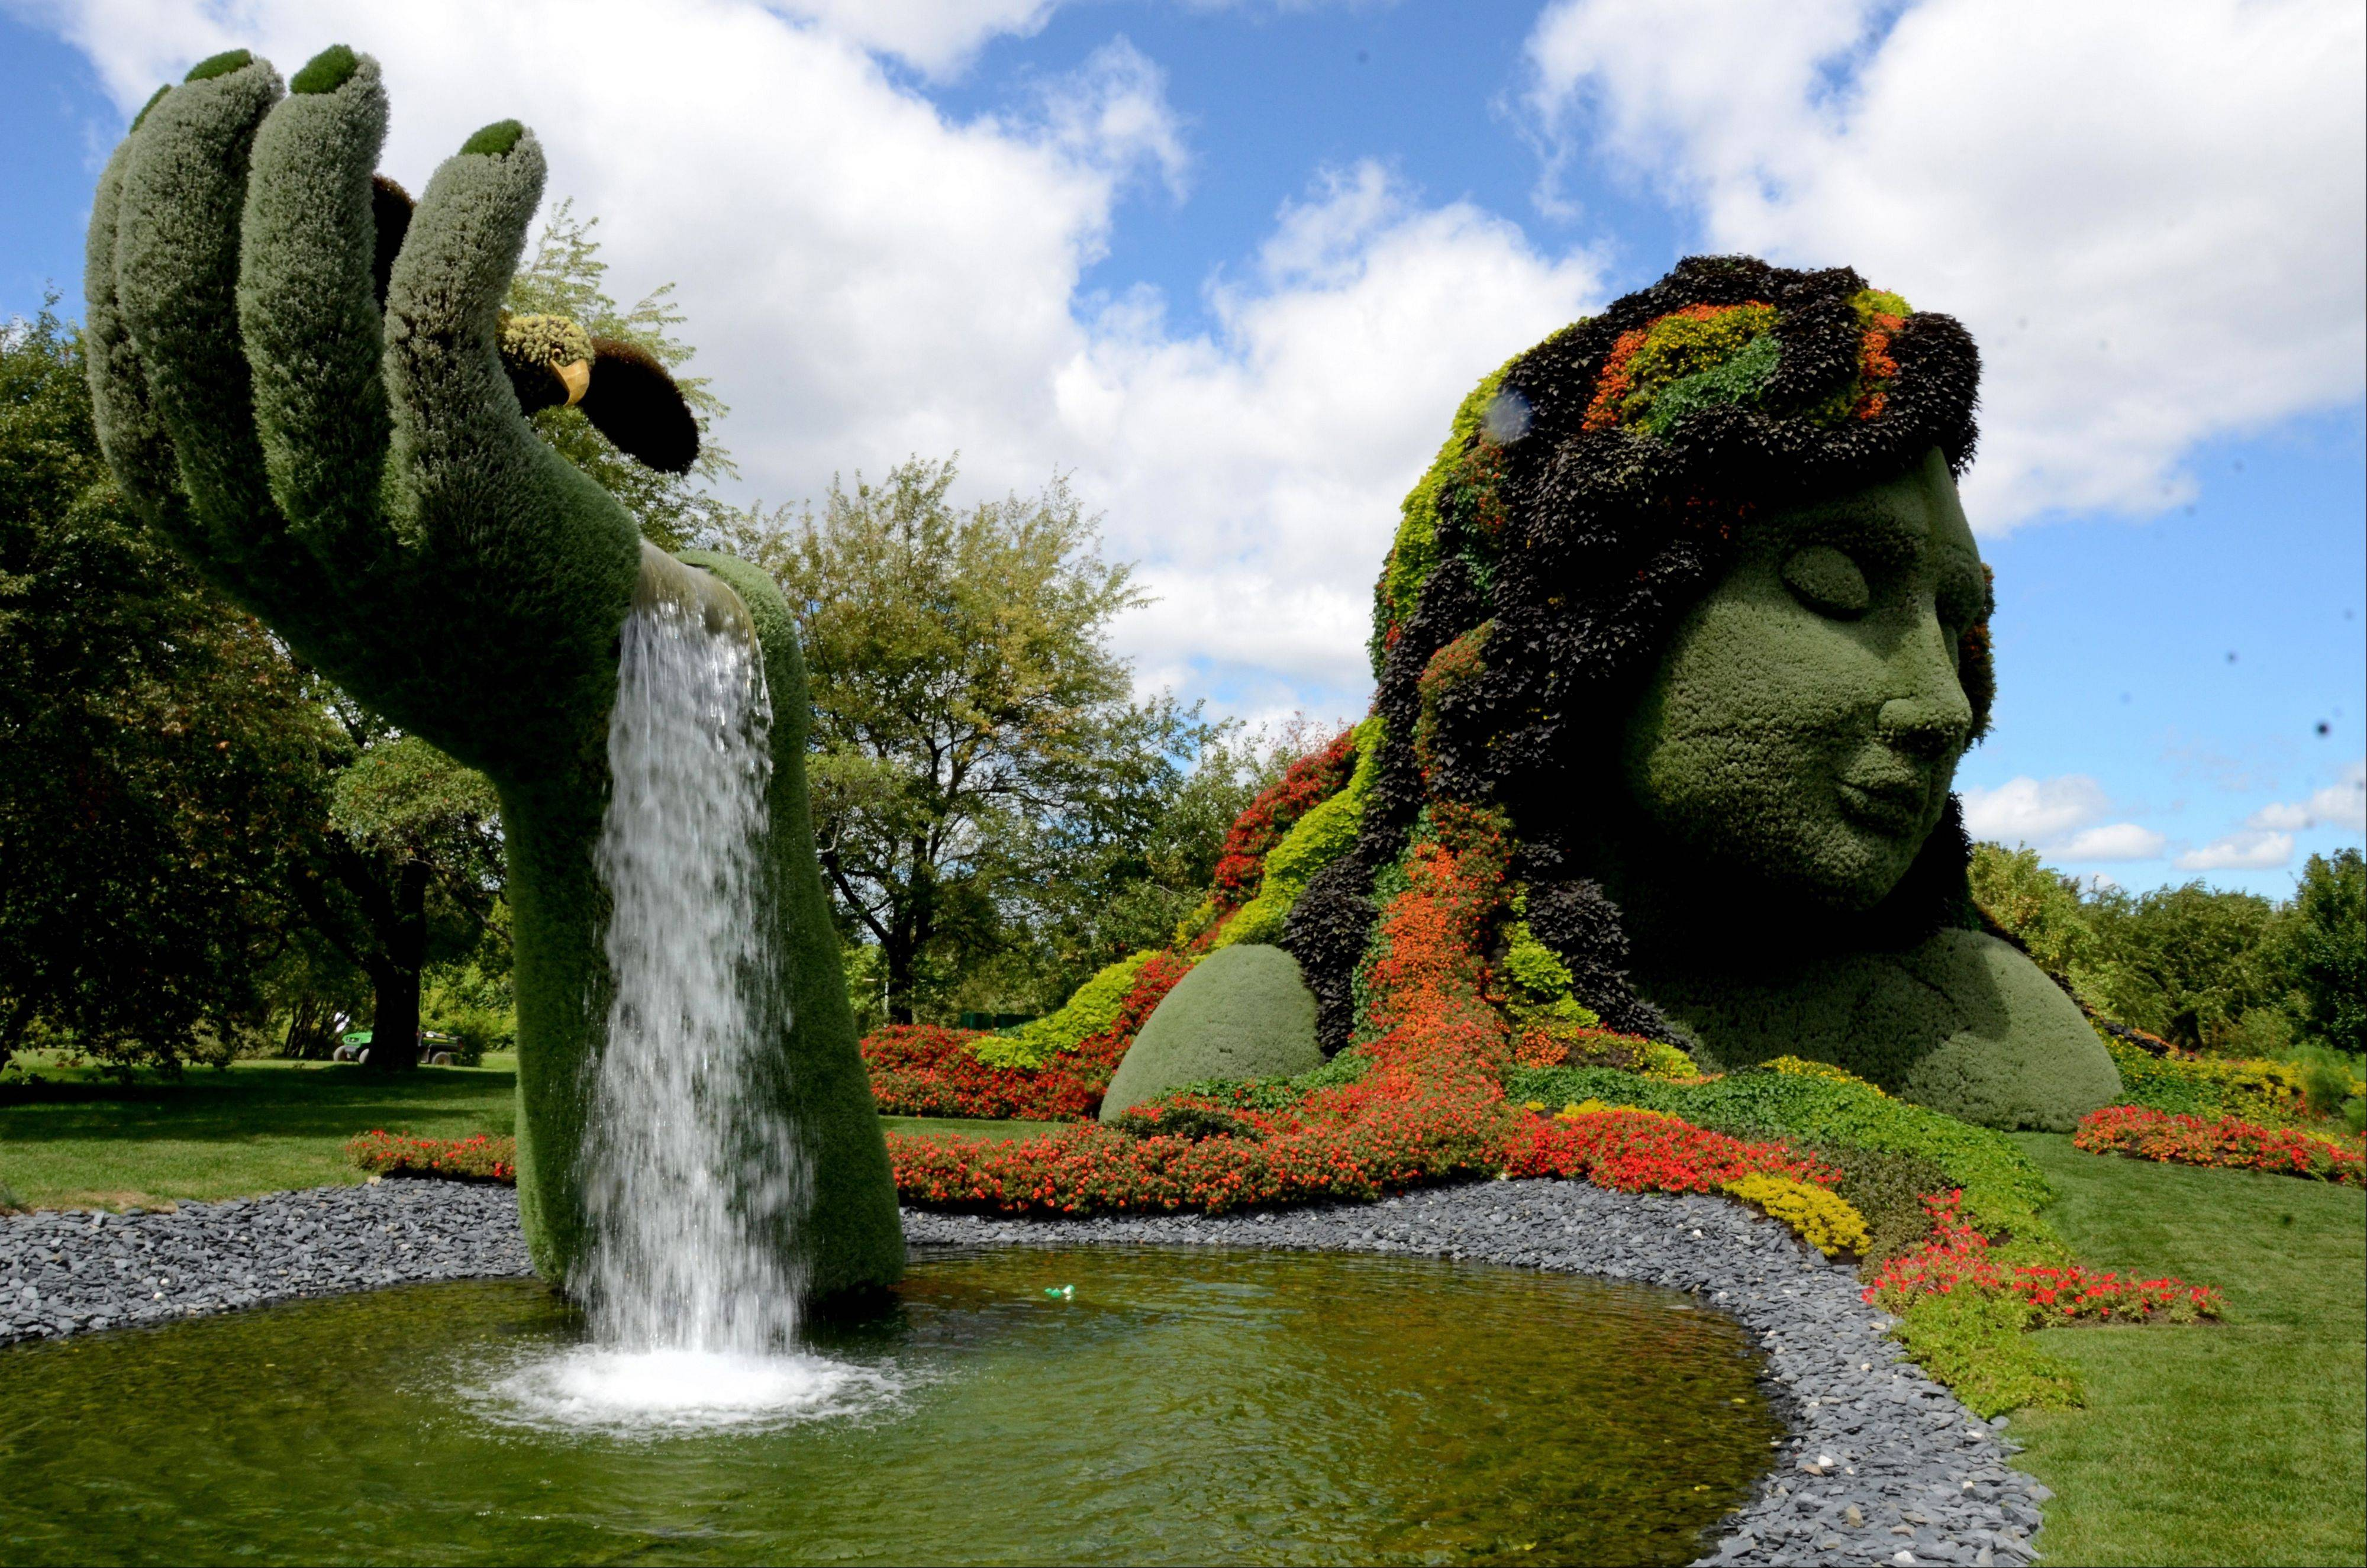 Stop by the Montreal Botanical Gardens in Montreal to see the towering plant sculptures that cover the grounds. Cyclists who want to ride the P'tit Train du Nord rail trail can catch a bicycle shuttle outside Montreal at Saint-Jerome.